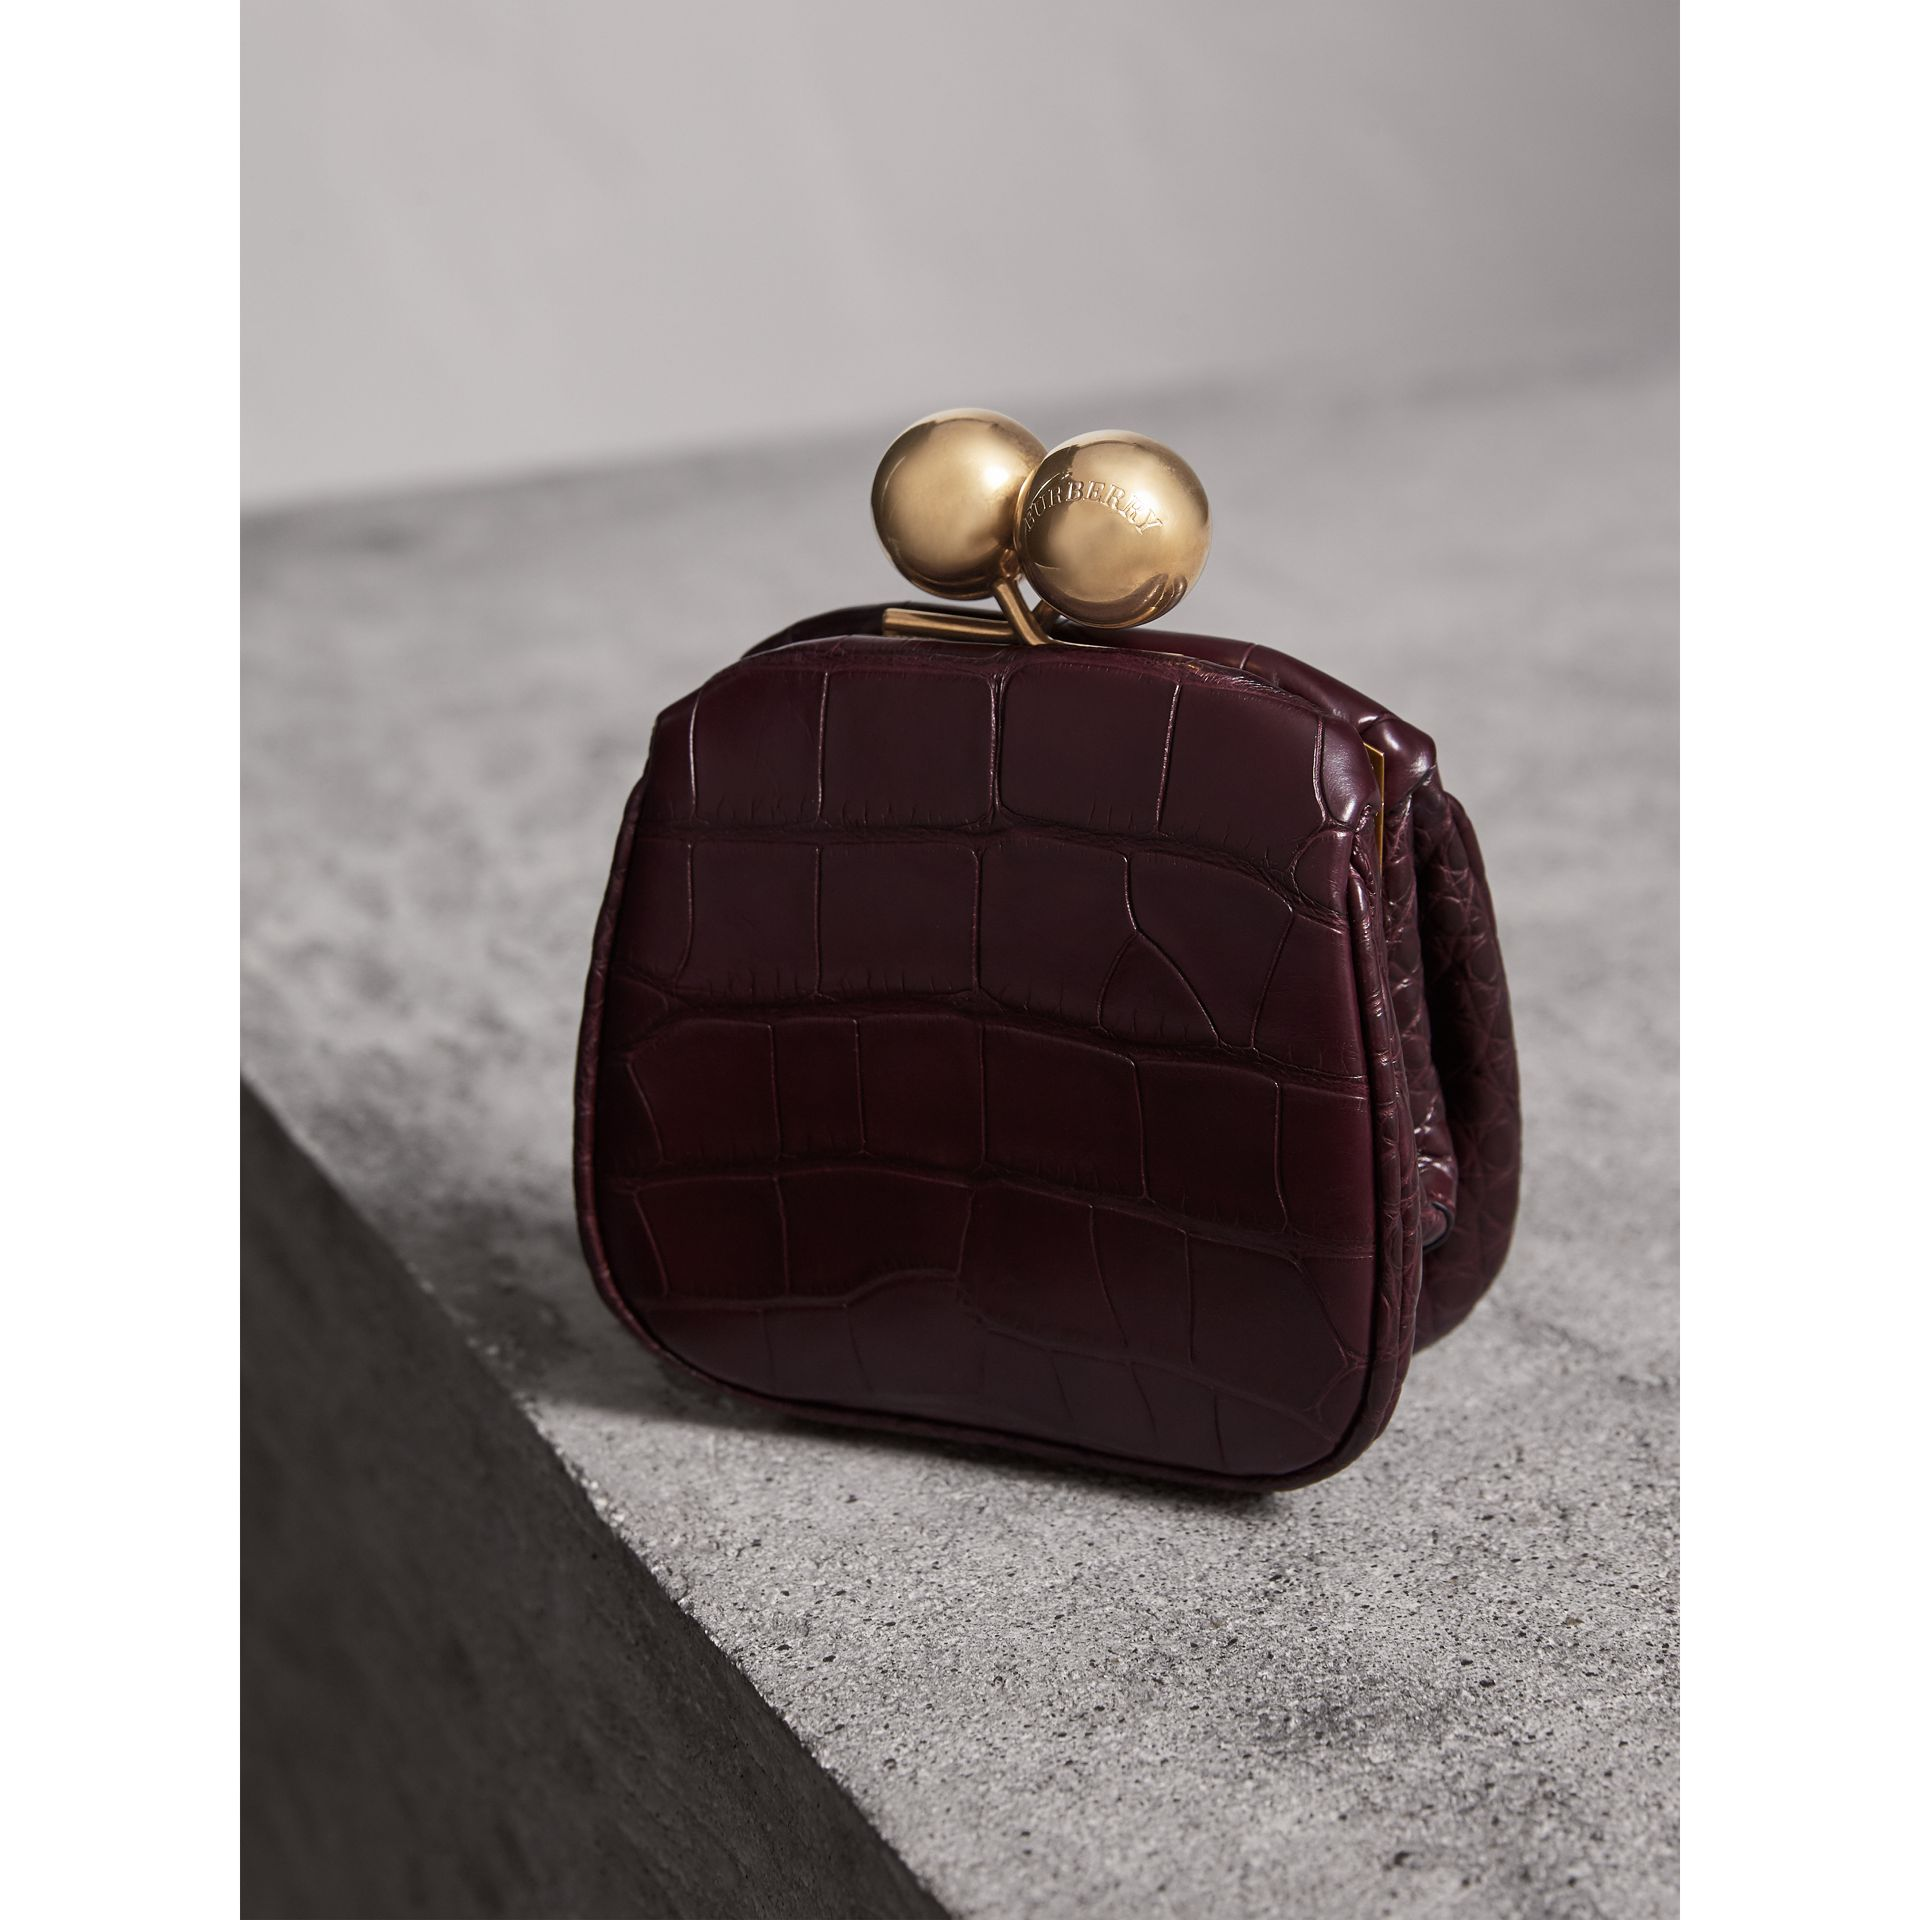 Mini Alligator Frame Bag in Dark Claret - Women | Burberry United States - gallery image 2